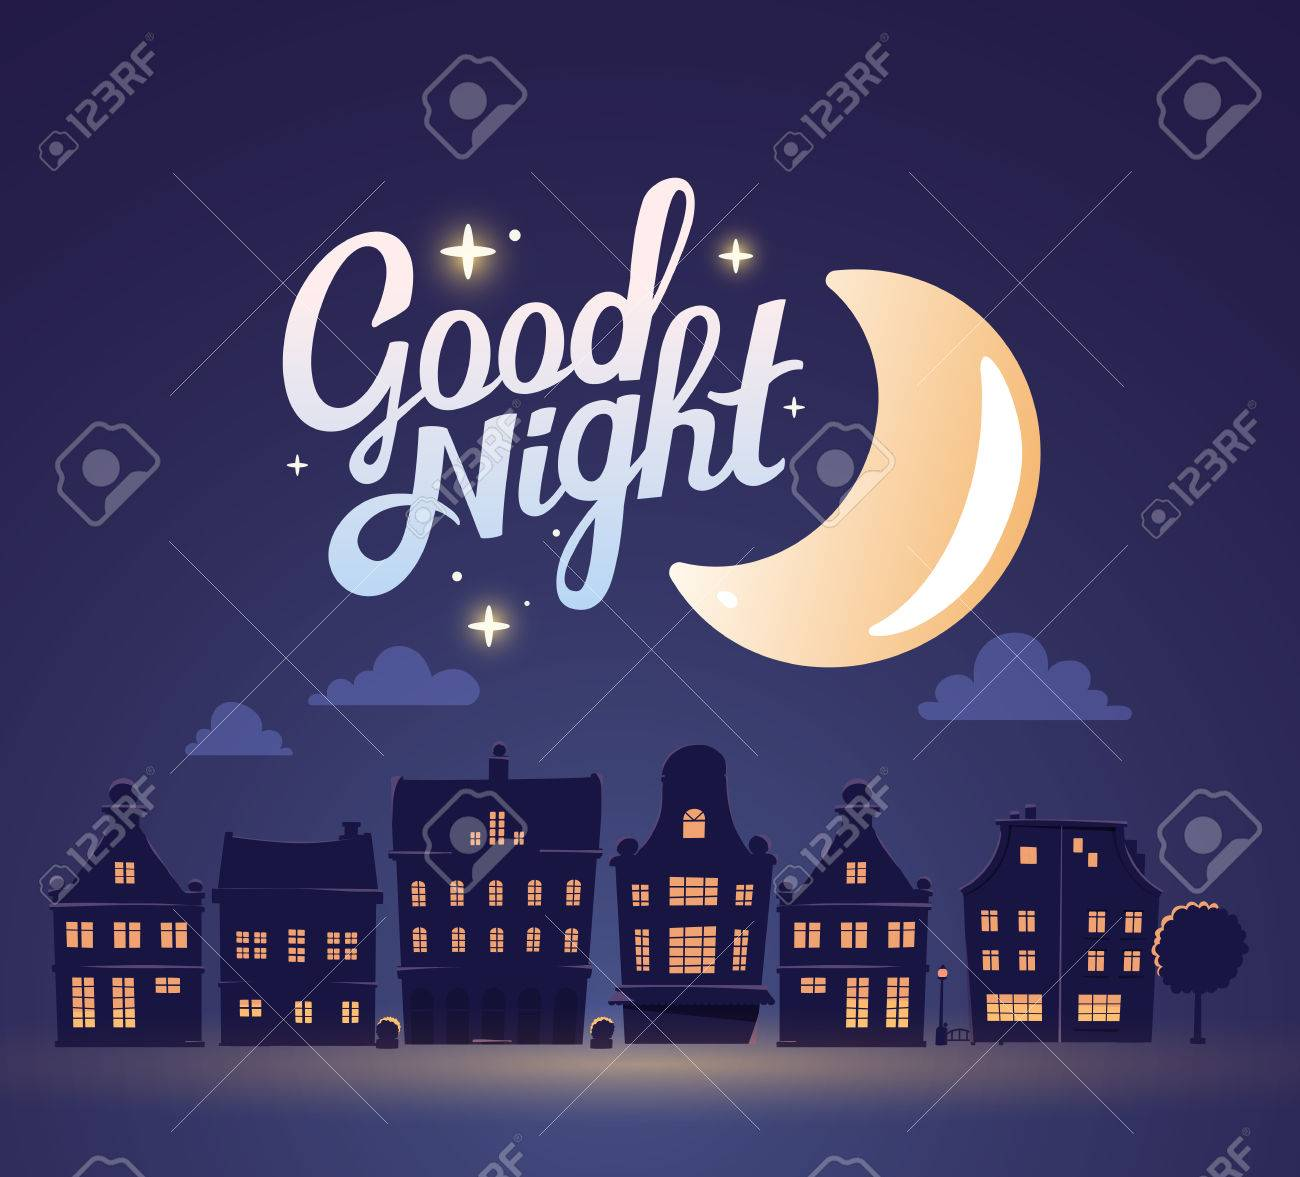 illustration of silhouette of night city landscape on dark blue sky background with big moon. Art design for web, site, advertising, poster, brochure, board, card, paper print. - 53833816